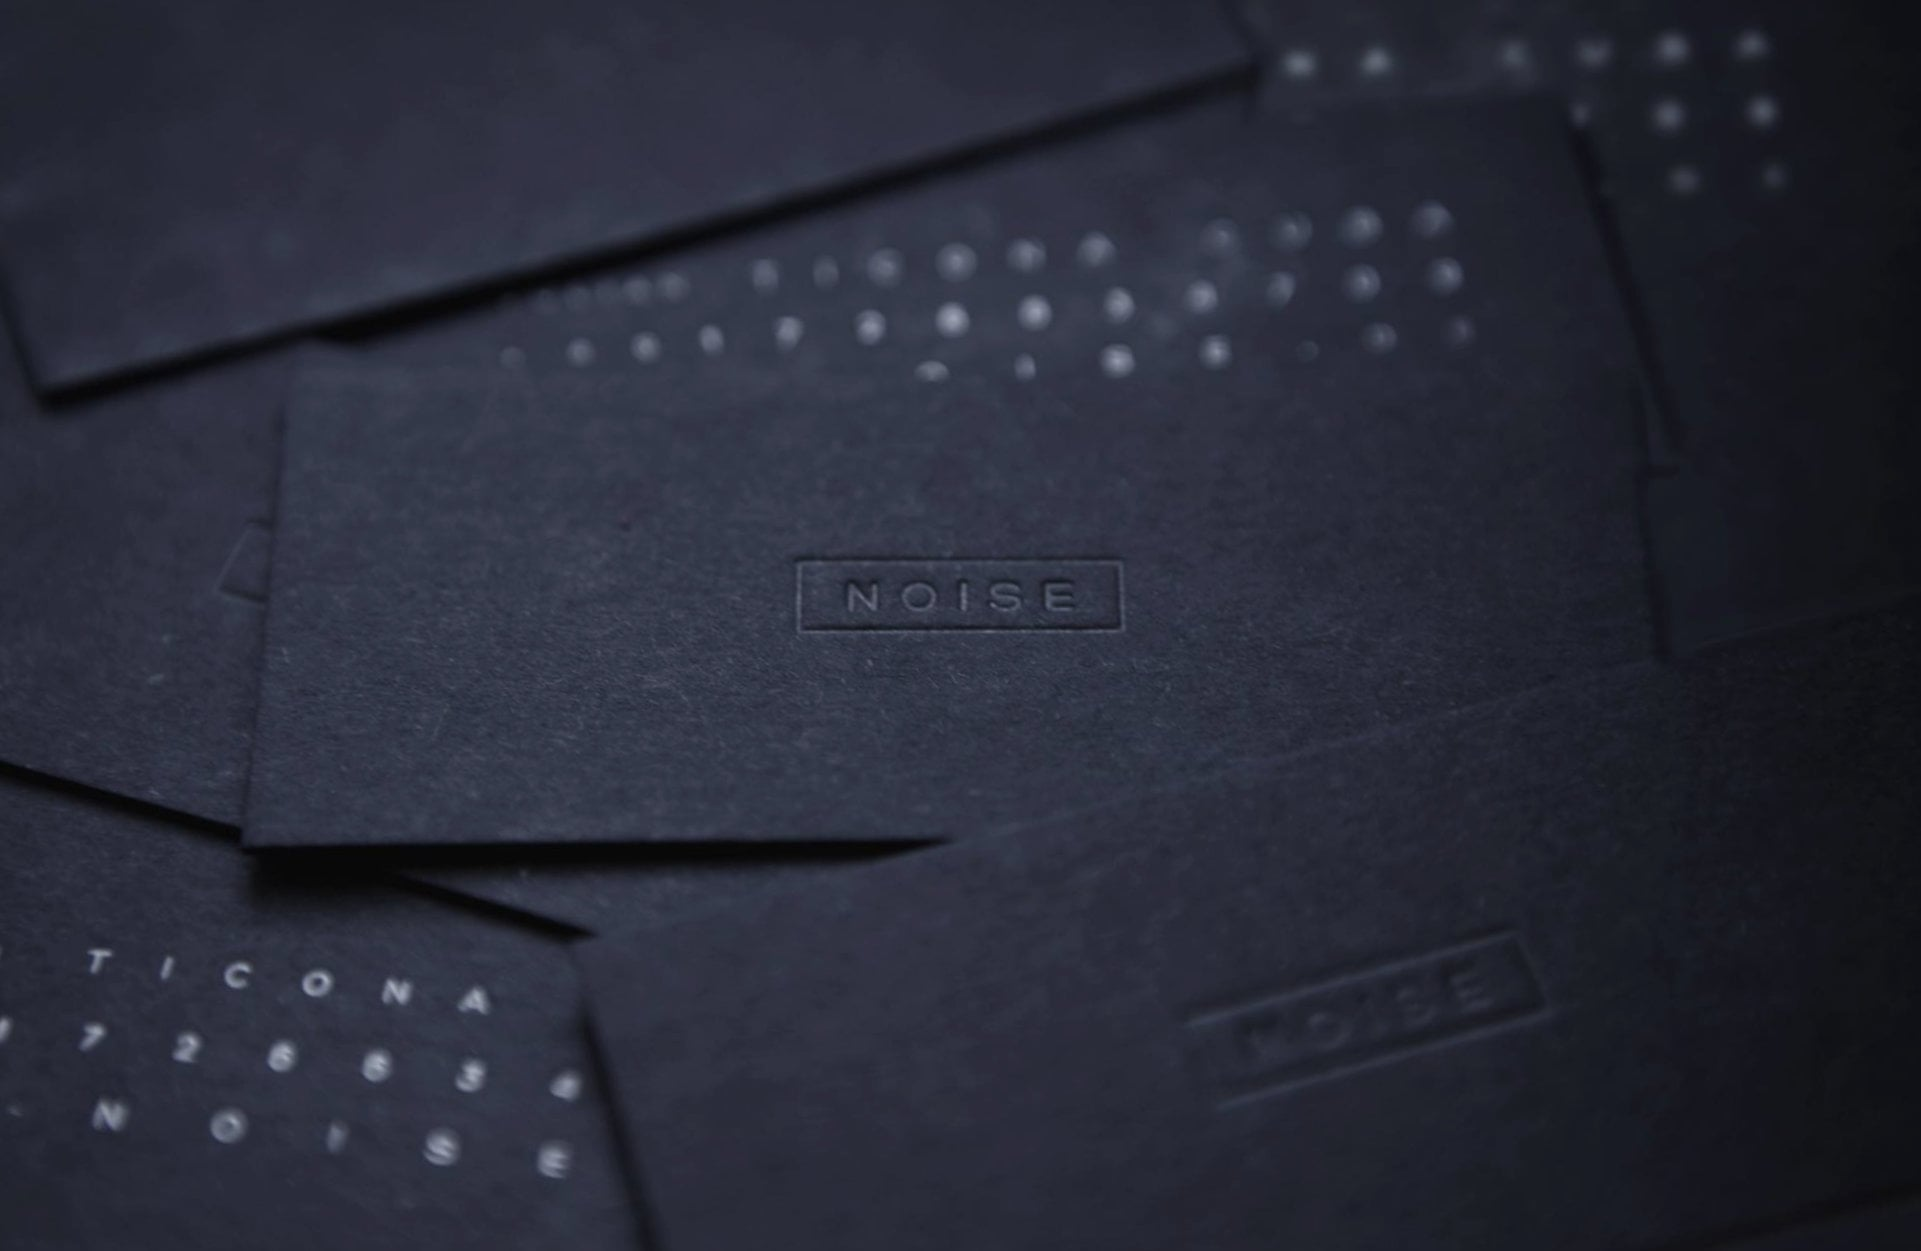 NOISE - black business cards